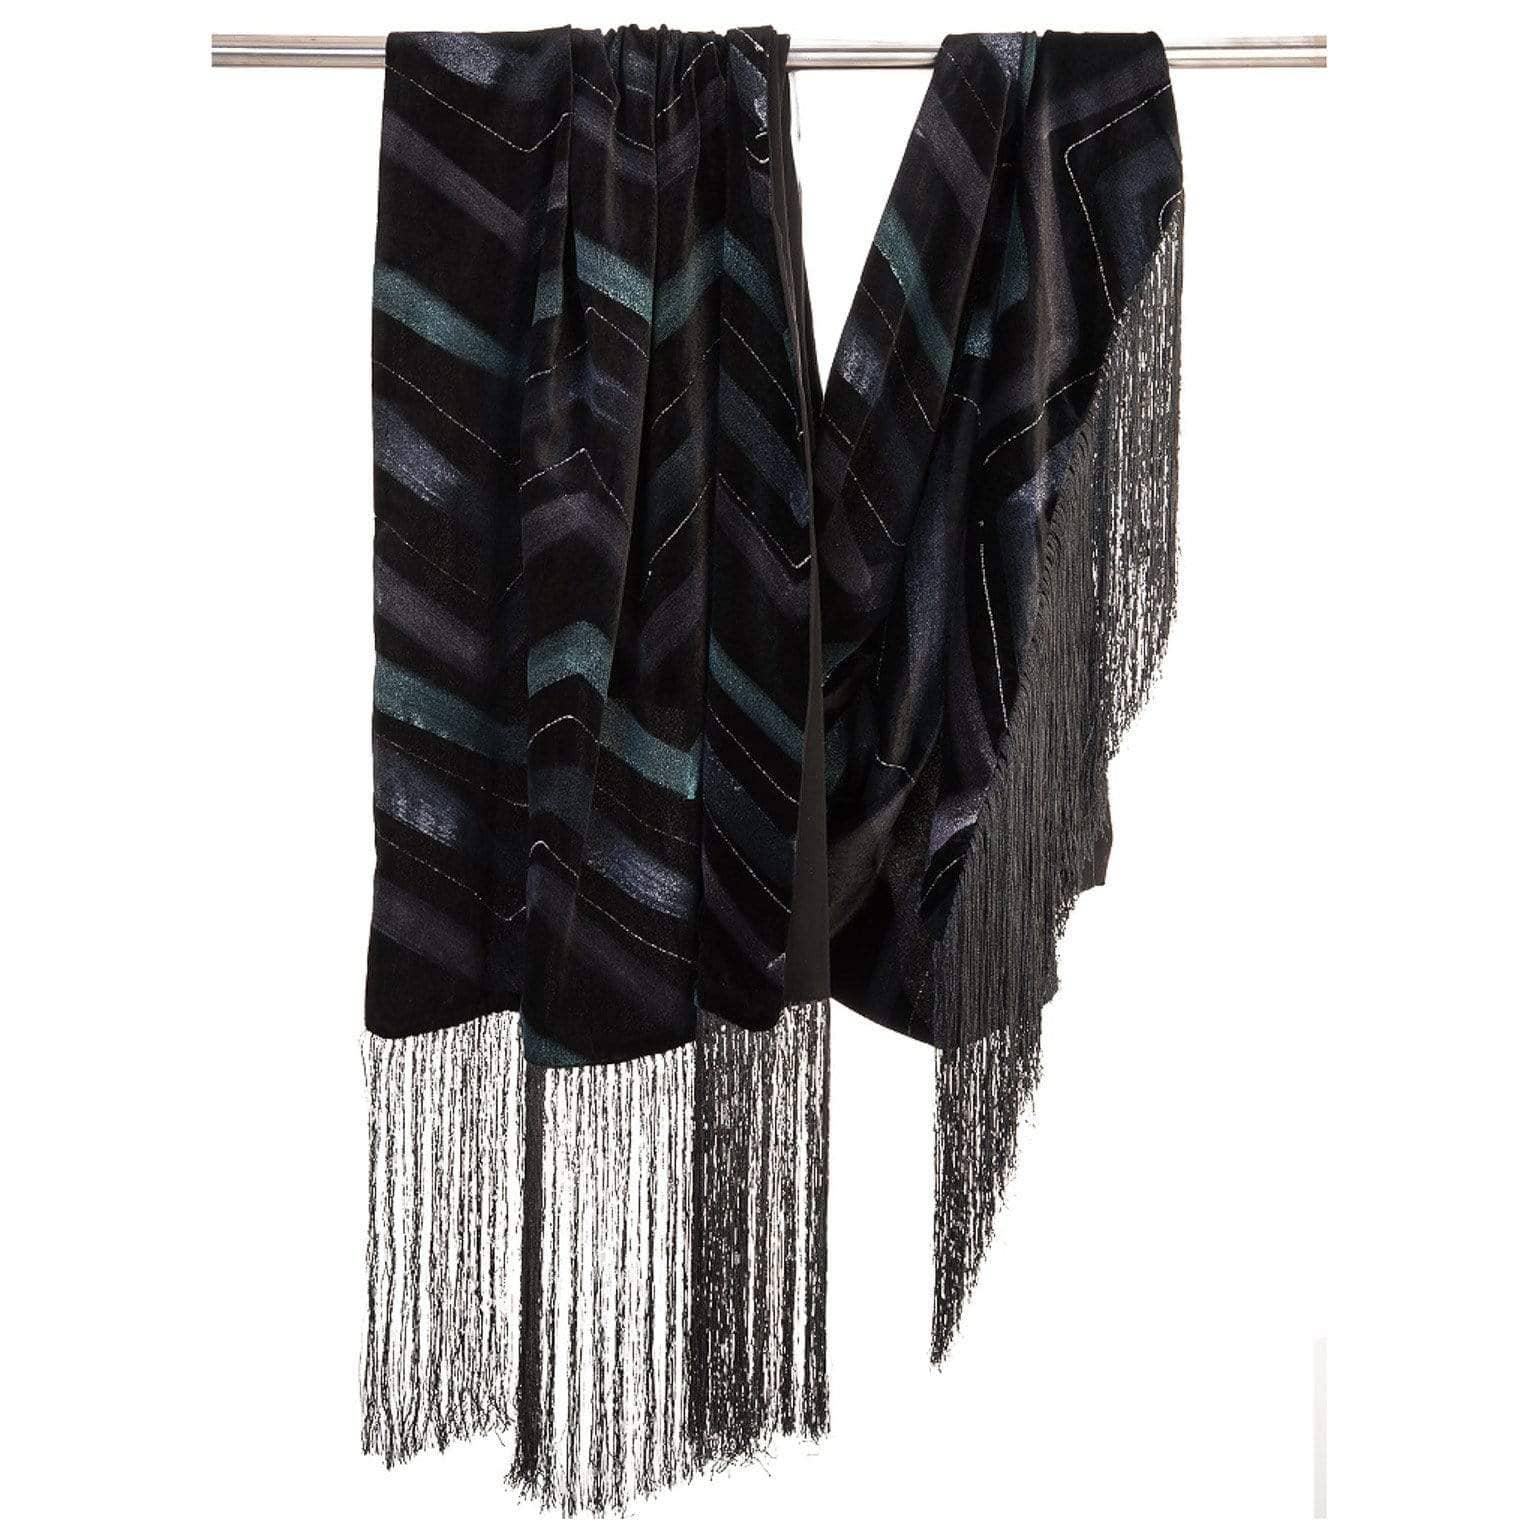 Black Velvet Evening Wrap - Fringed - Silk Lining